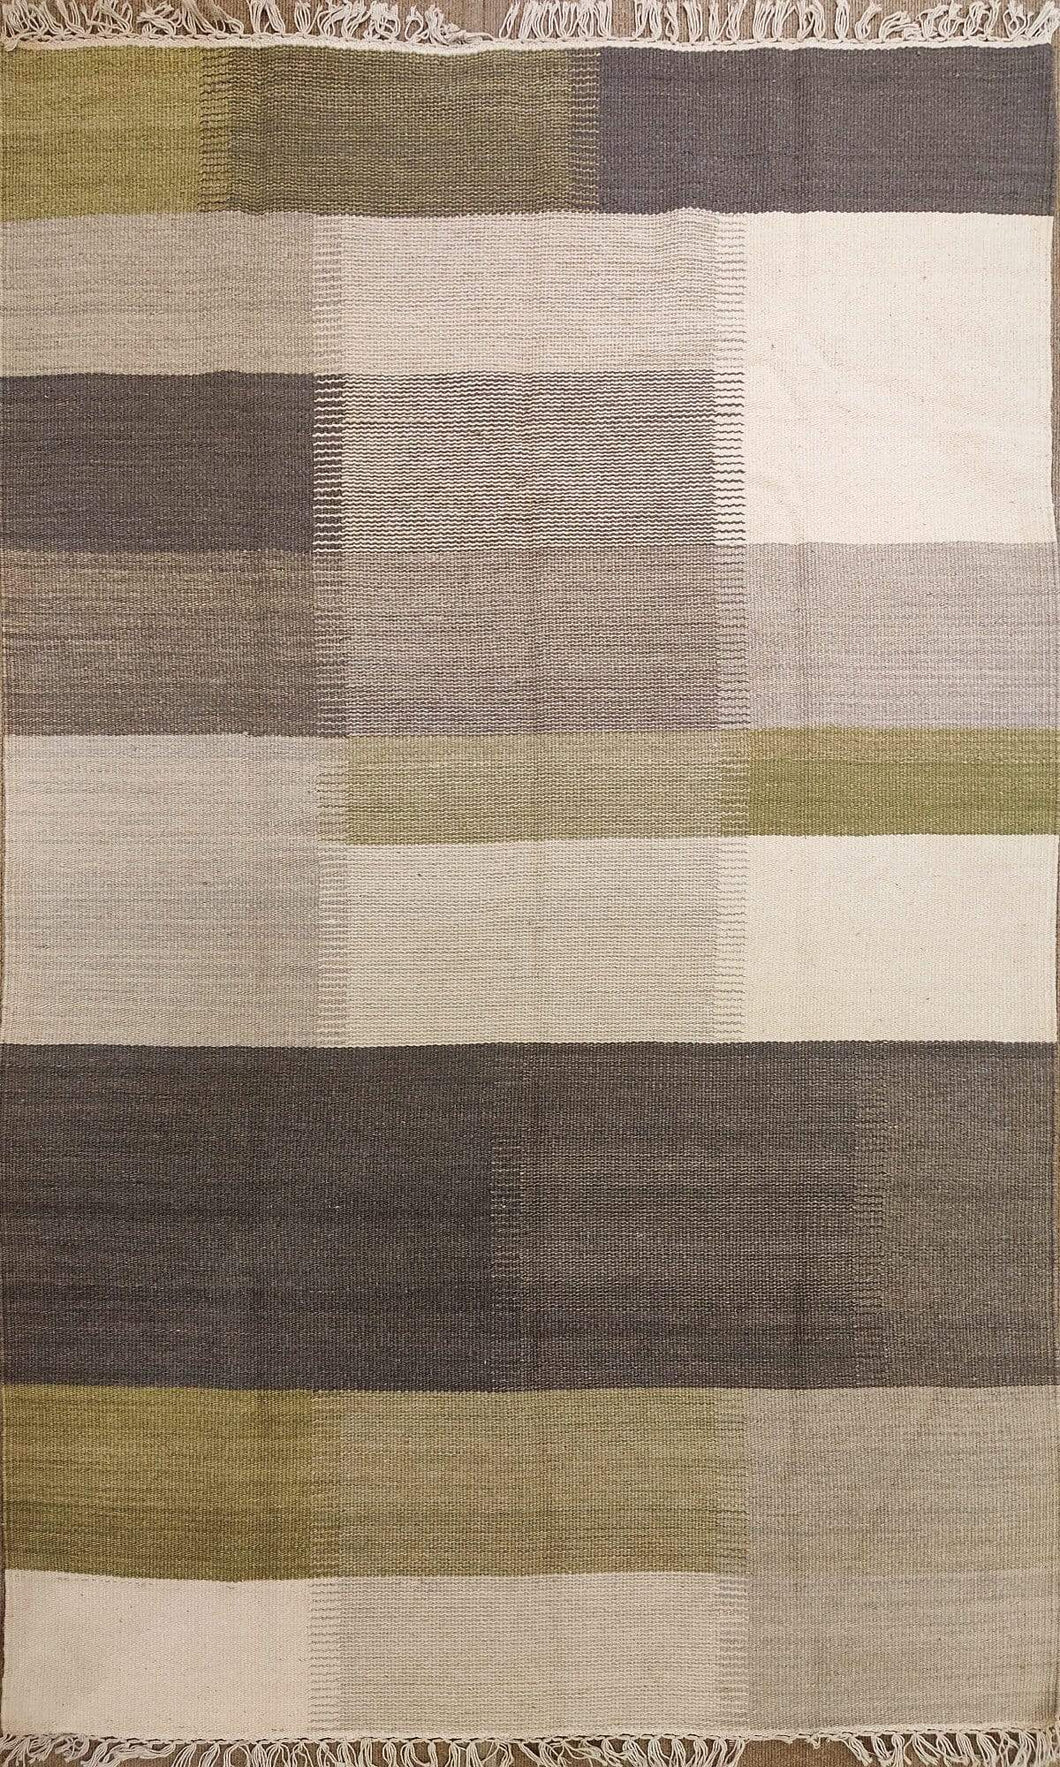 The Rugs Cafe Dhurries 4 x 6 / Multi Multiple Colored Column Striped Linear Rug - Modern and Contemporary Rug